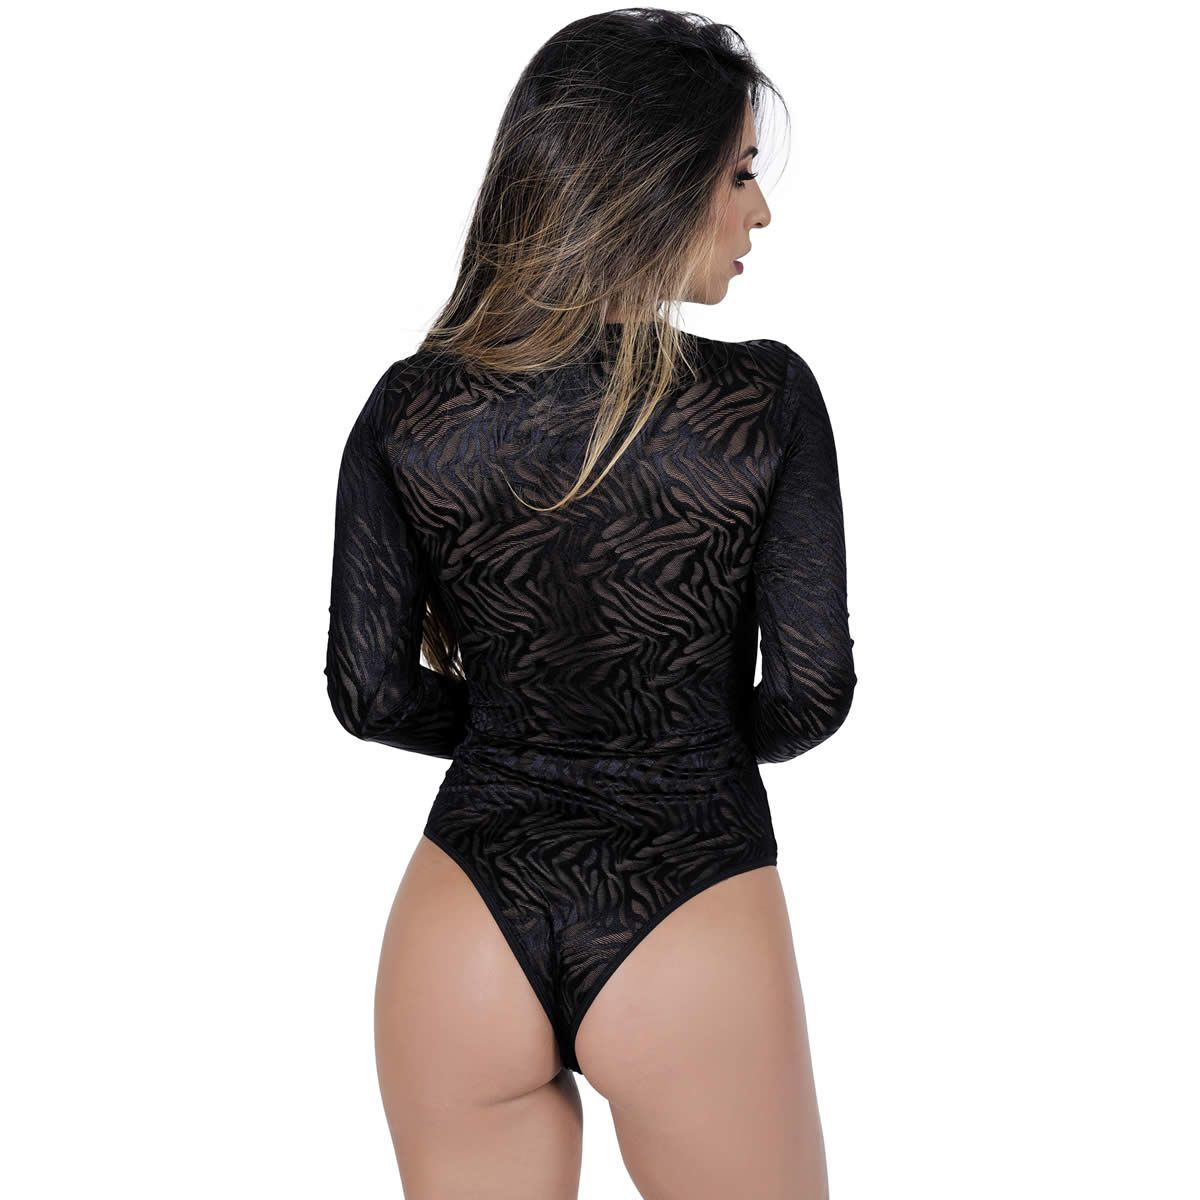 Body Preto Transparente em Tule Animal Print - GL513